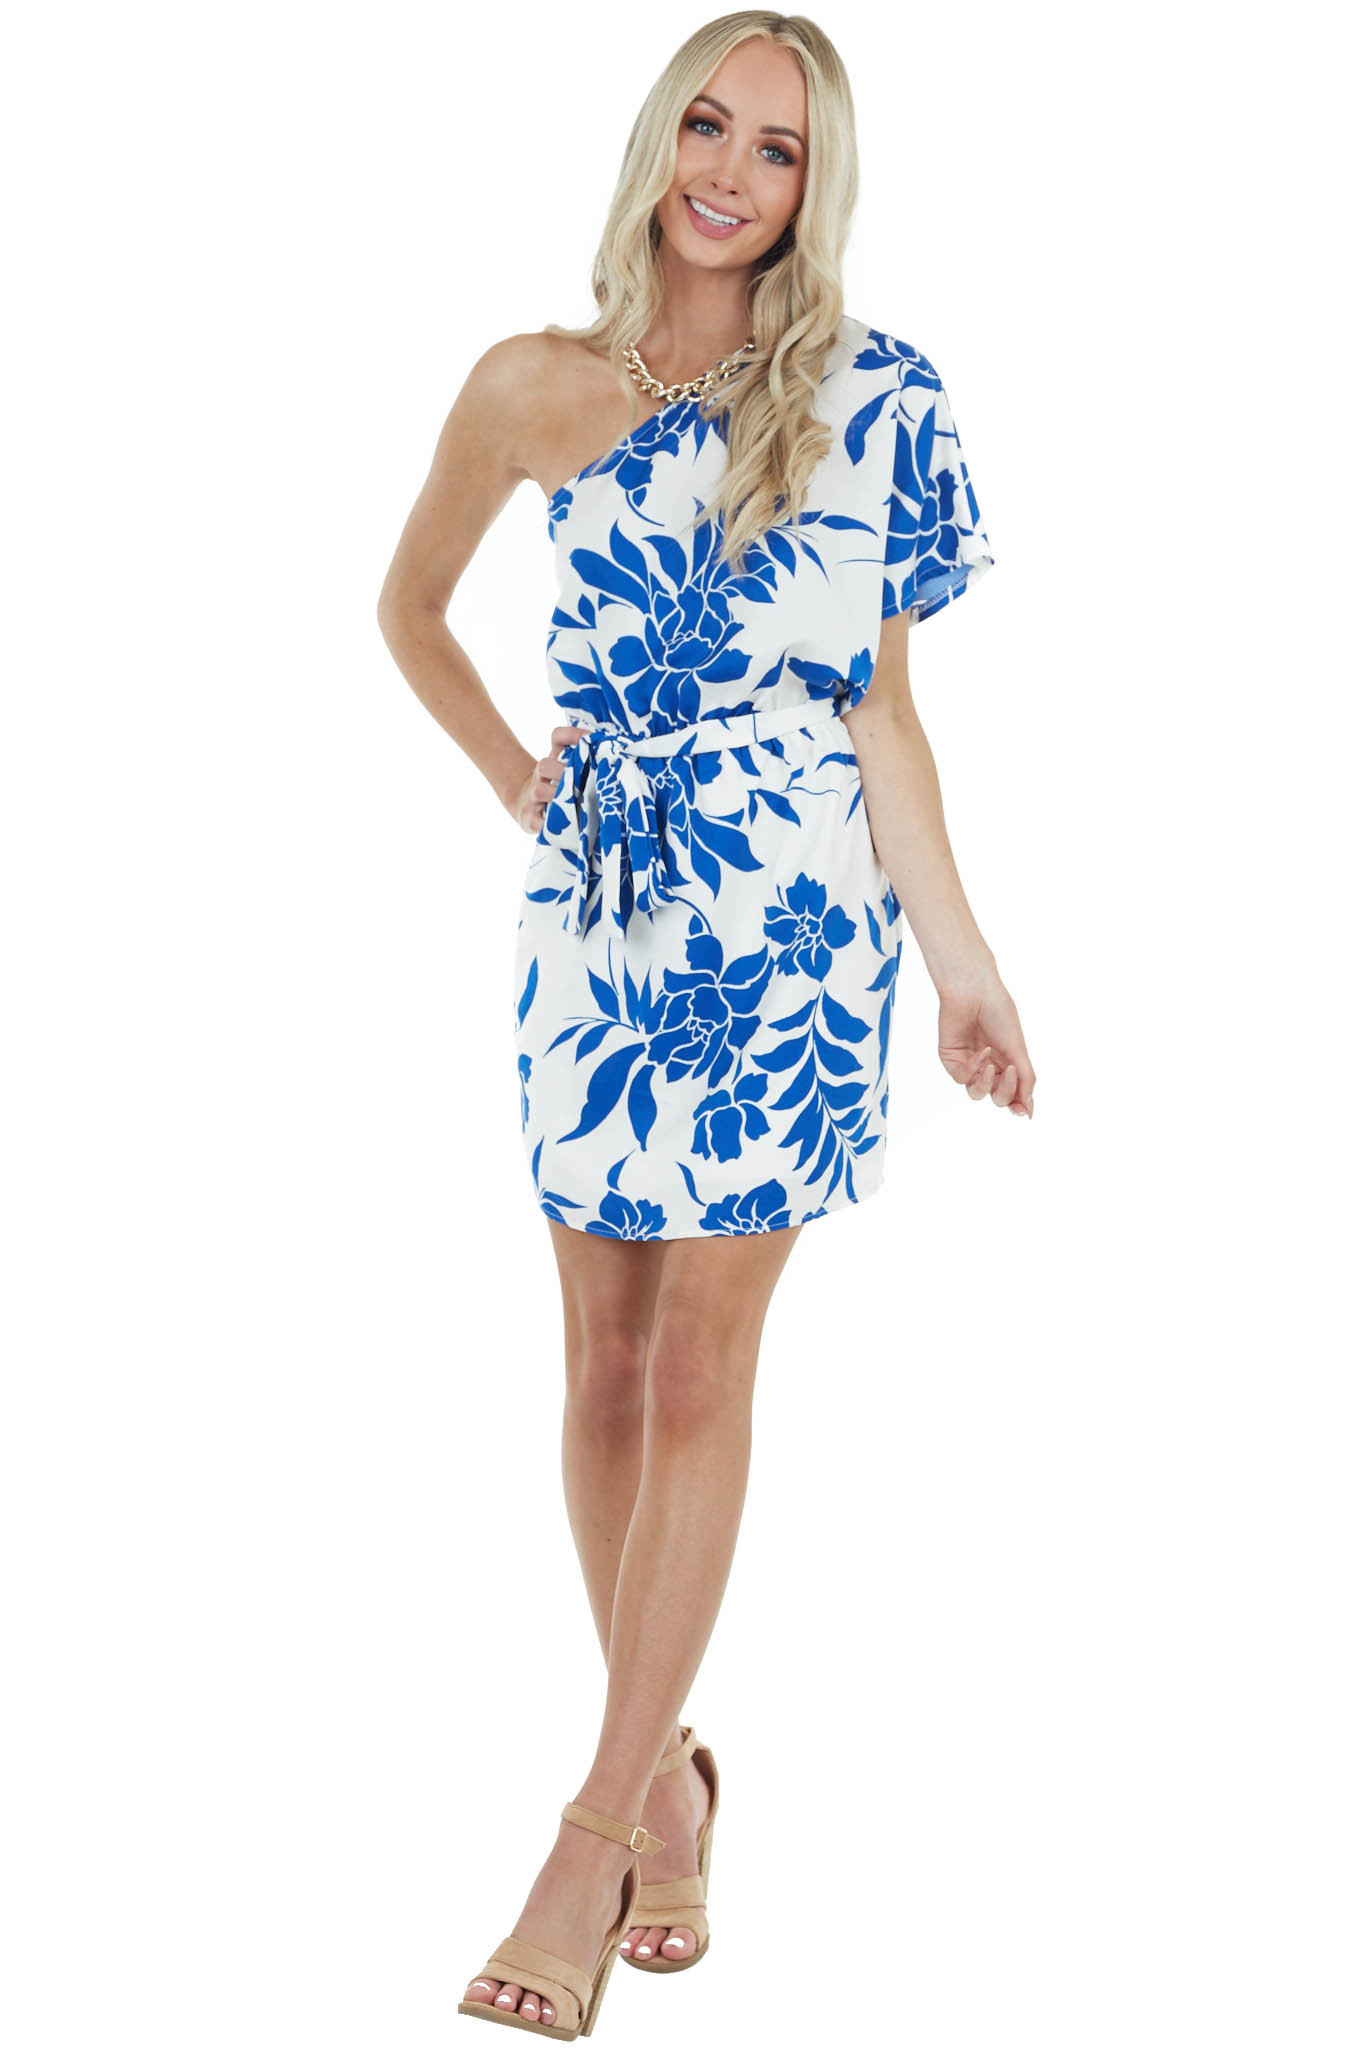 Ivory Floral Print One Shoulder Mini Dress with Tie Detail